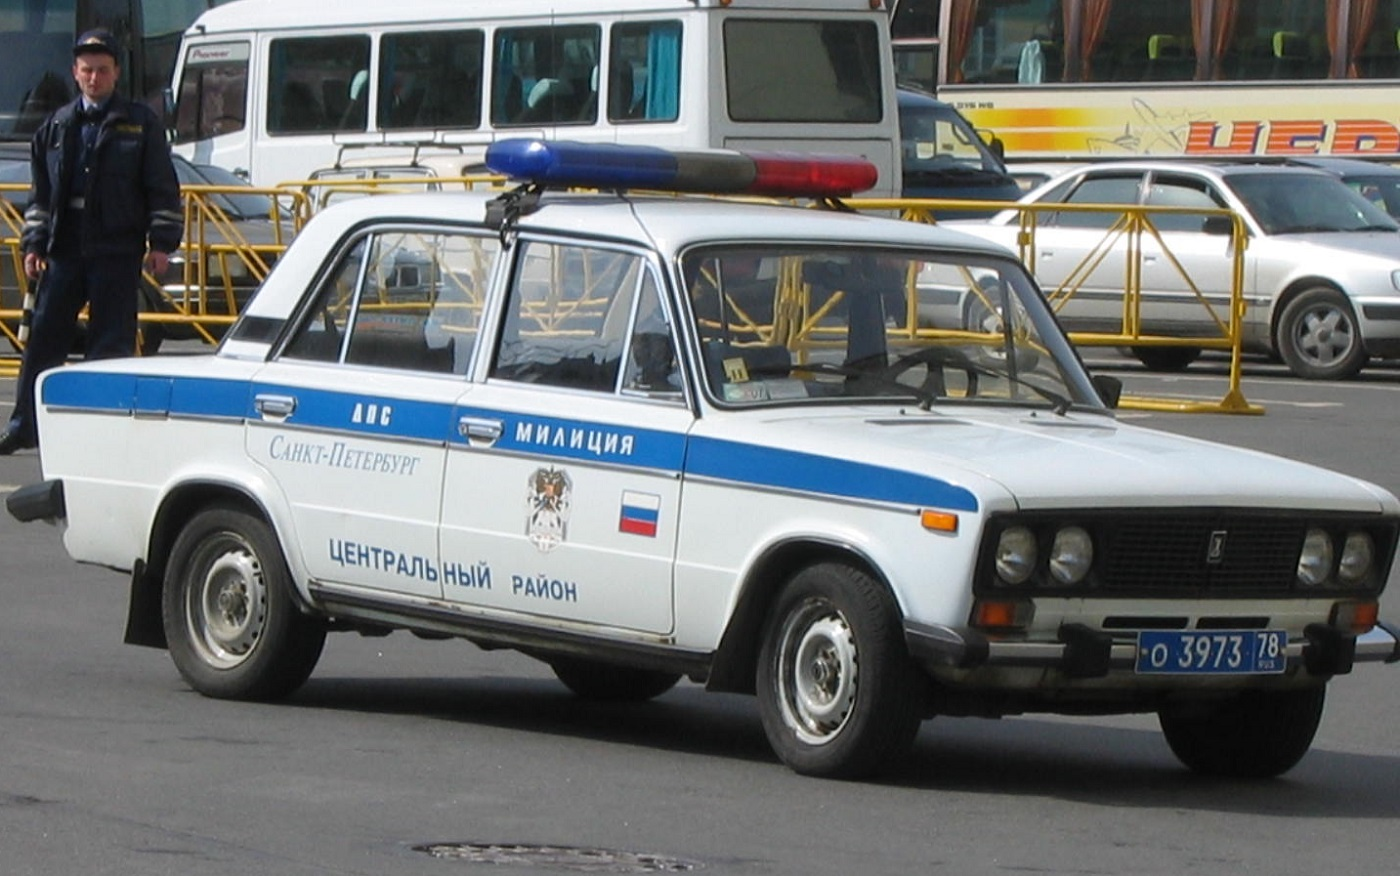 vaz-2106_police_car_in_saint_petersburg_russia.jpg